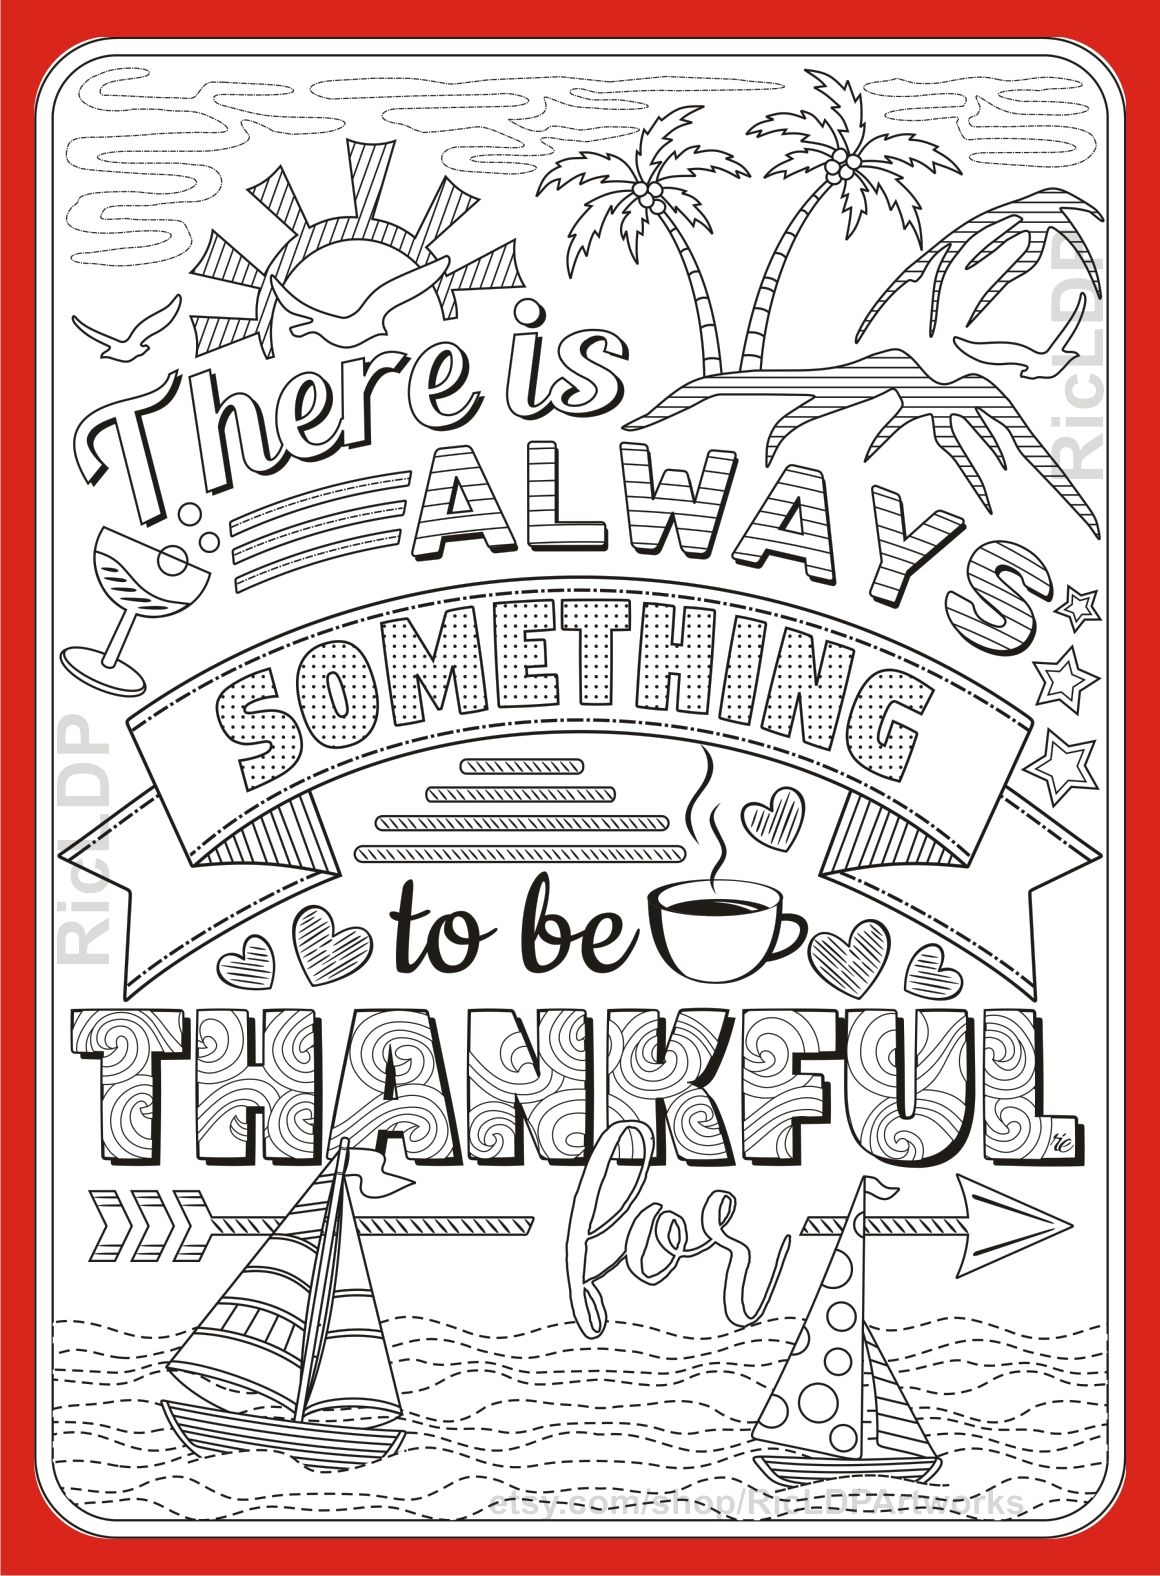 There Is Always Something To Be Thankful For Gratitude Etsy Thanksgiving Coloring Pages Quote Coloring Pages Coloring Pages For Grown Ups